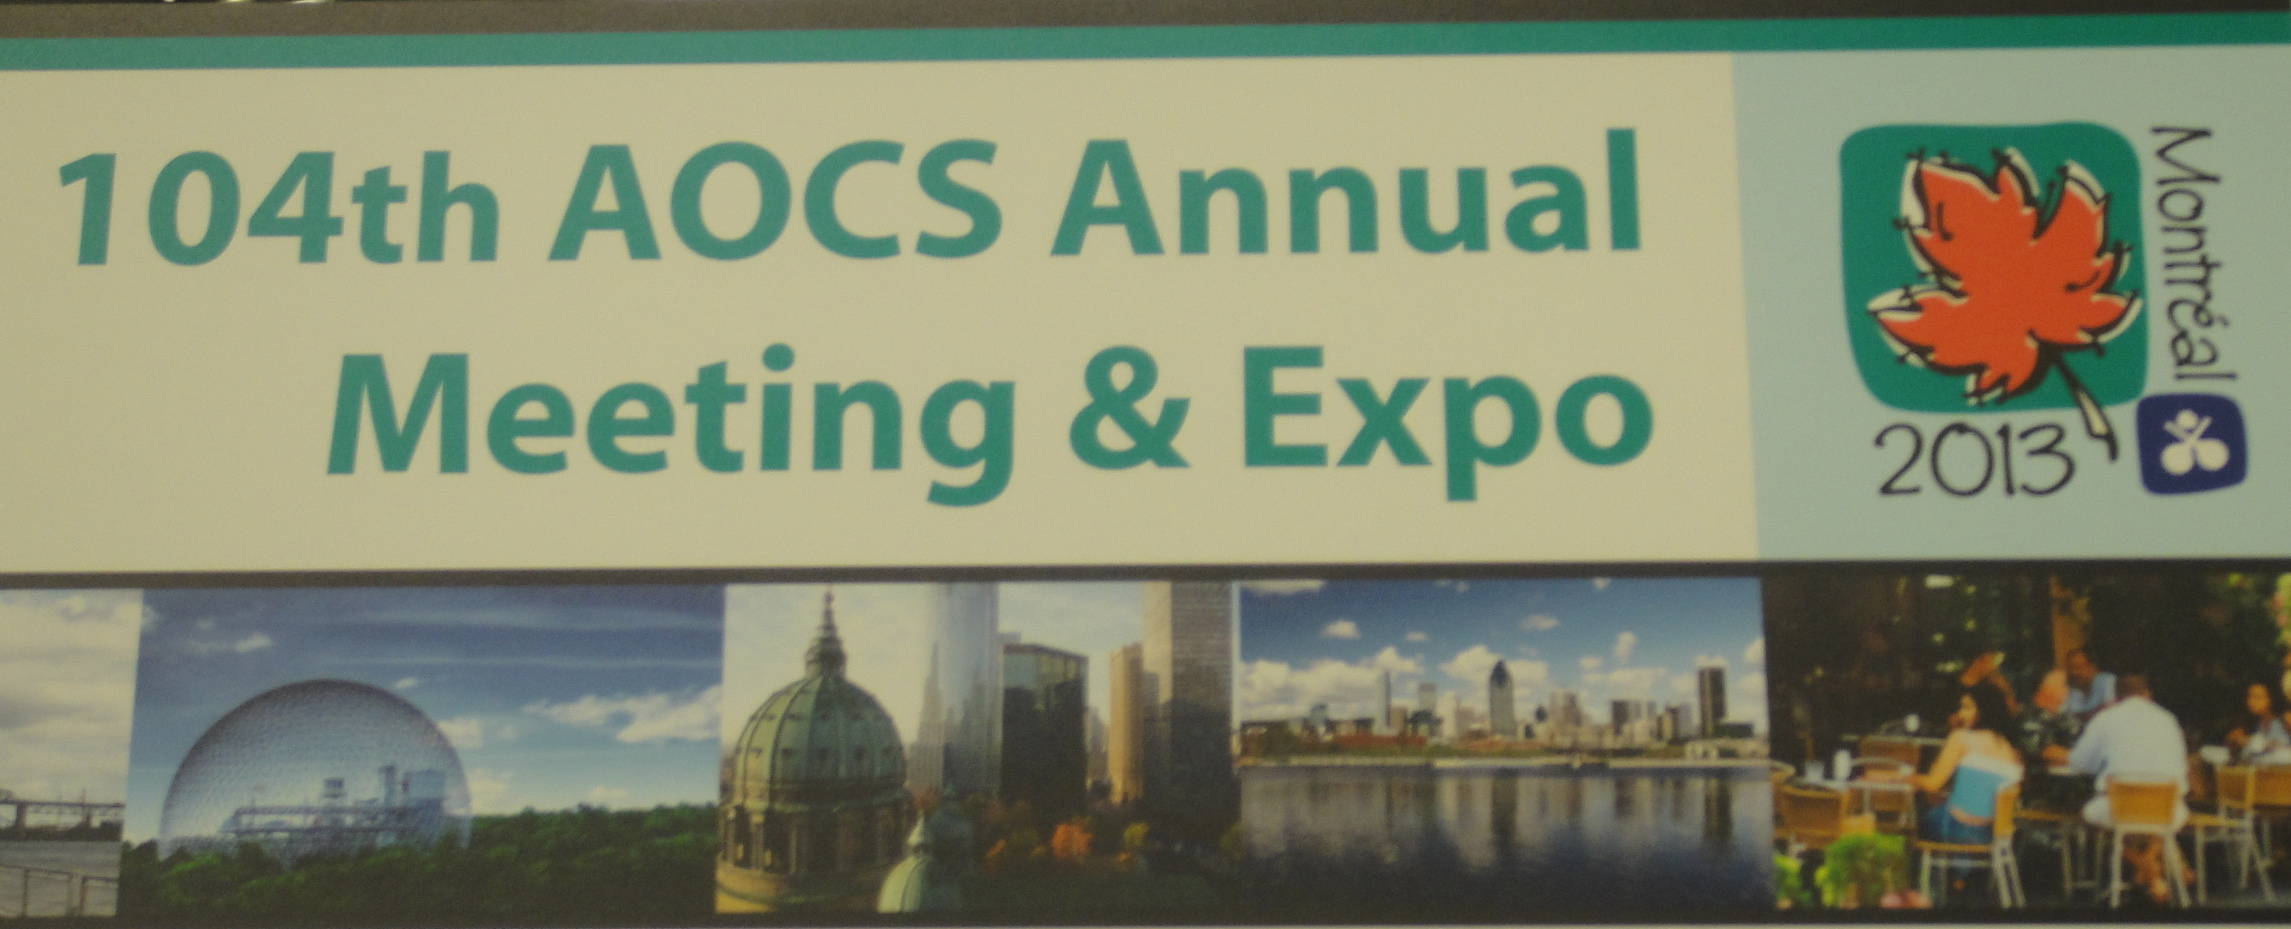 AOCS 2013 Meeting Shows Growing Interest in Olive Oil